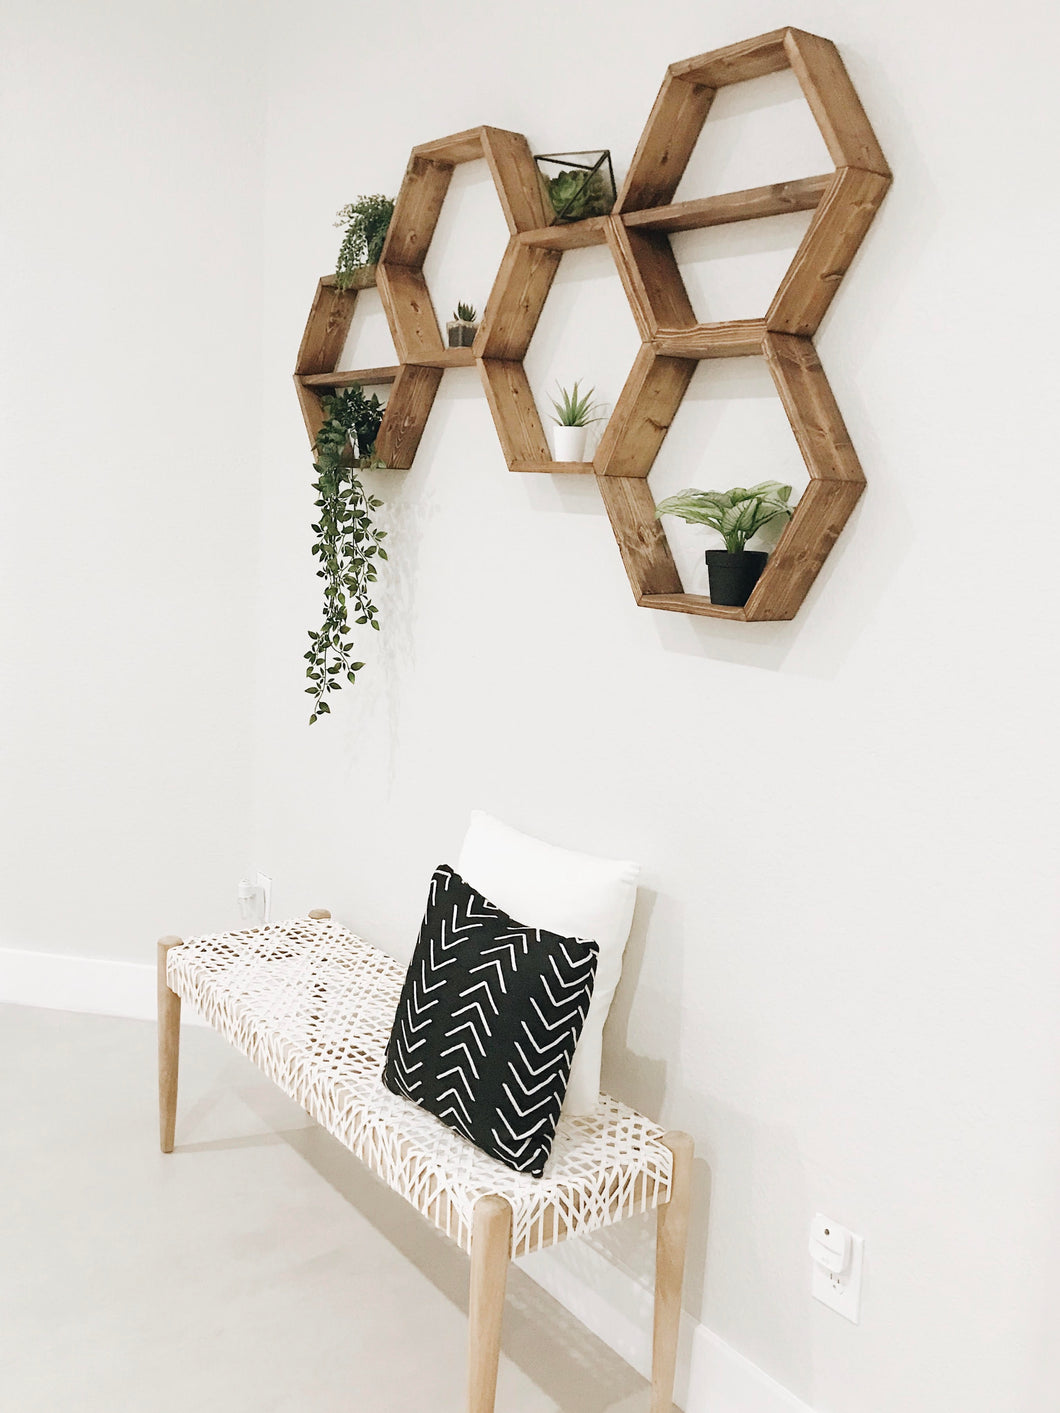 Hexagon Shelves | 3.5